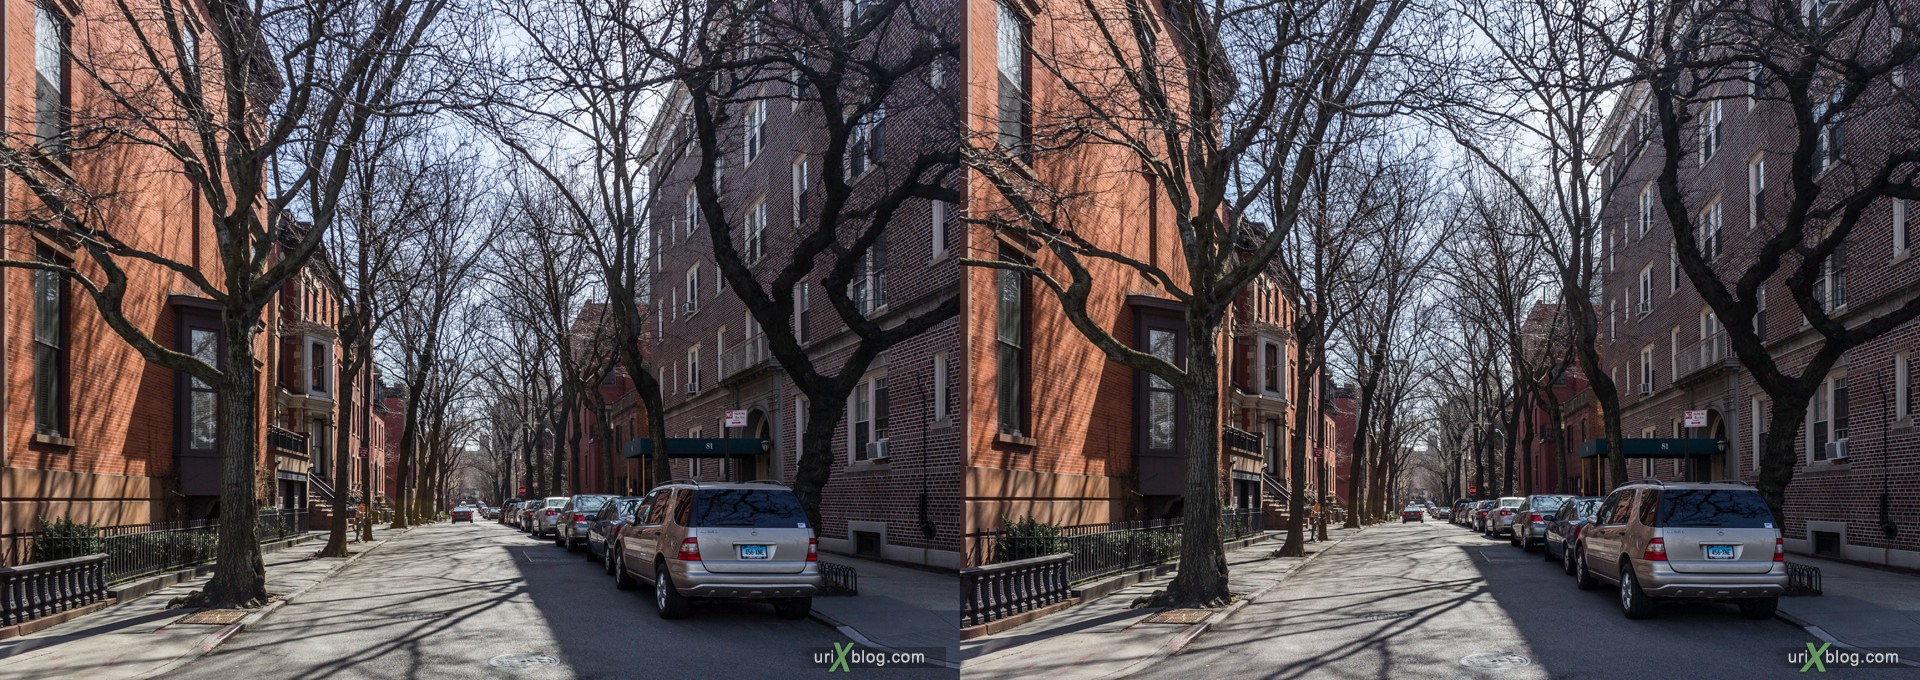 2013, Cranberry street, Brooklyn, NYC, New York City, USA, 3D, stereo pair, cross-eyed, crossview, cross view stereo pair, stereoscopic